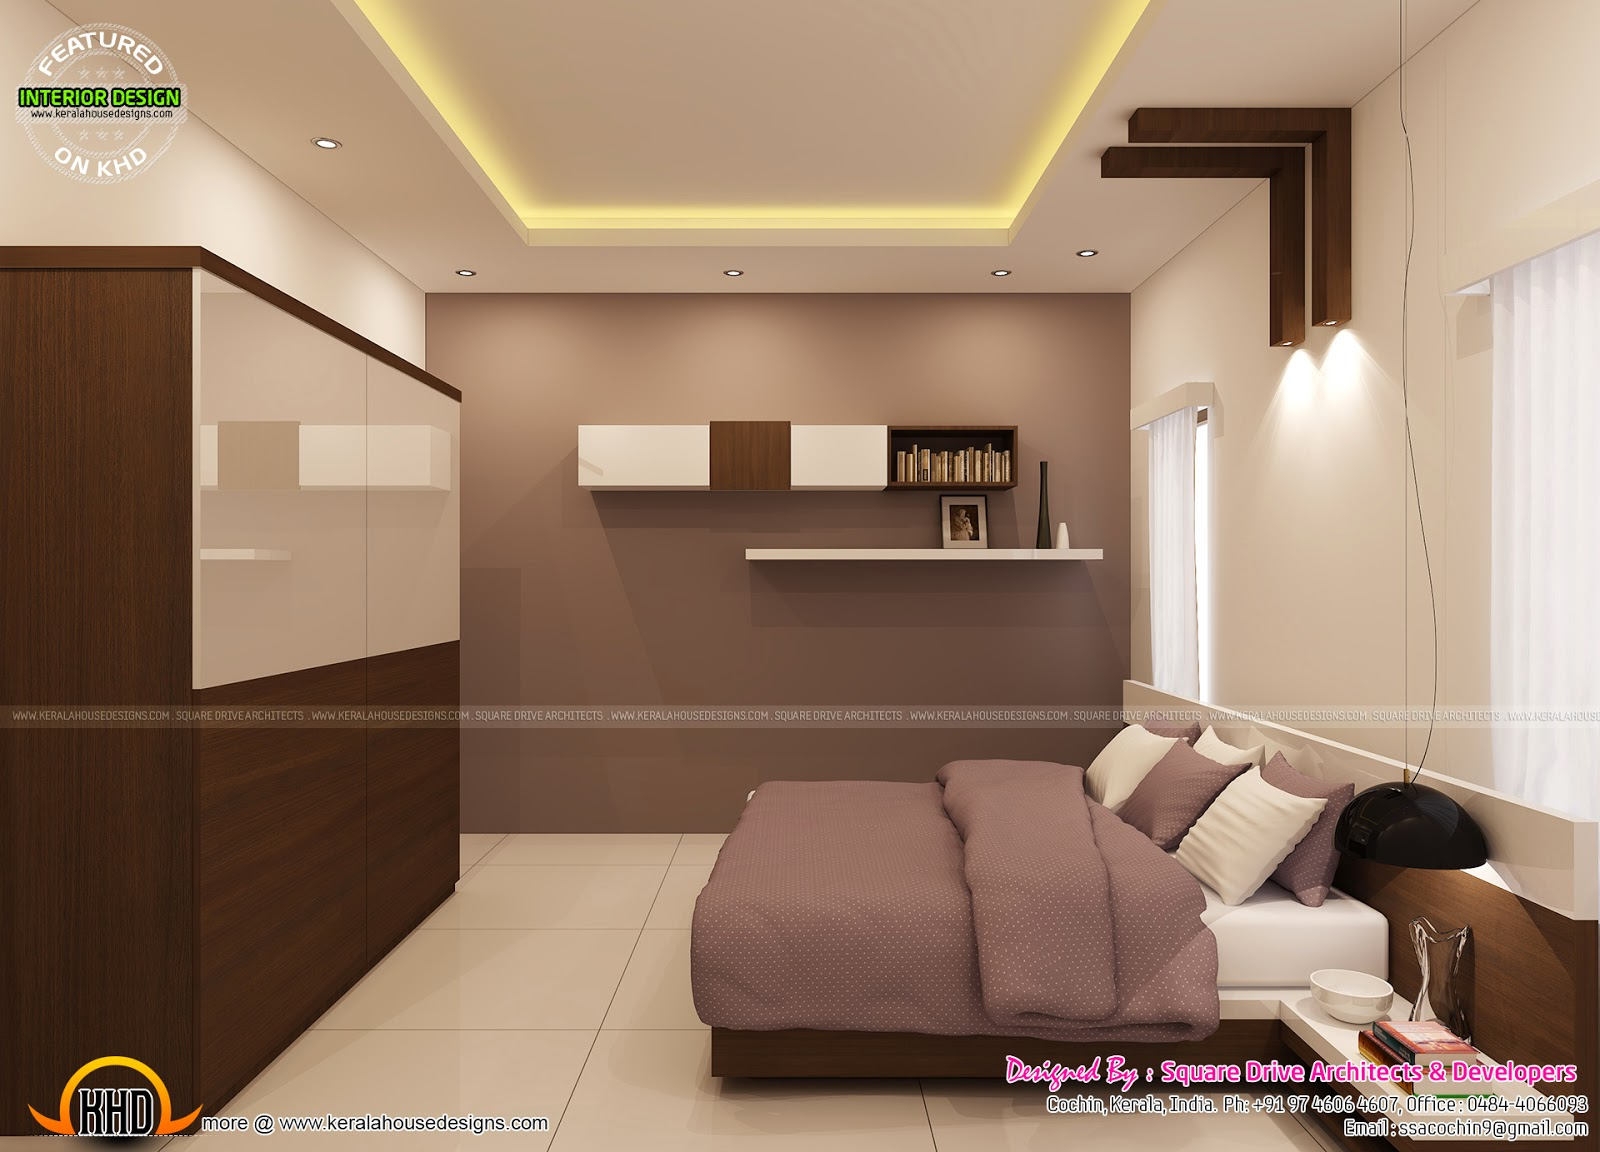 Bedroom interior decoration kerala home design and floor for 100 sq ft bedroom layout